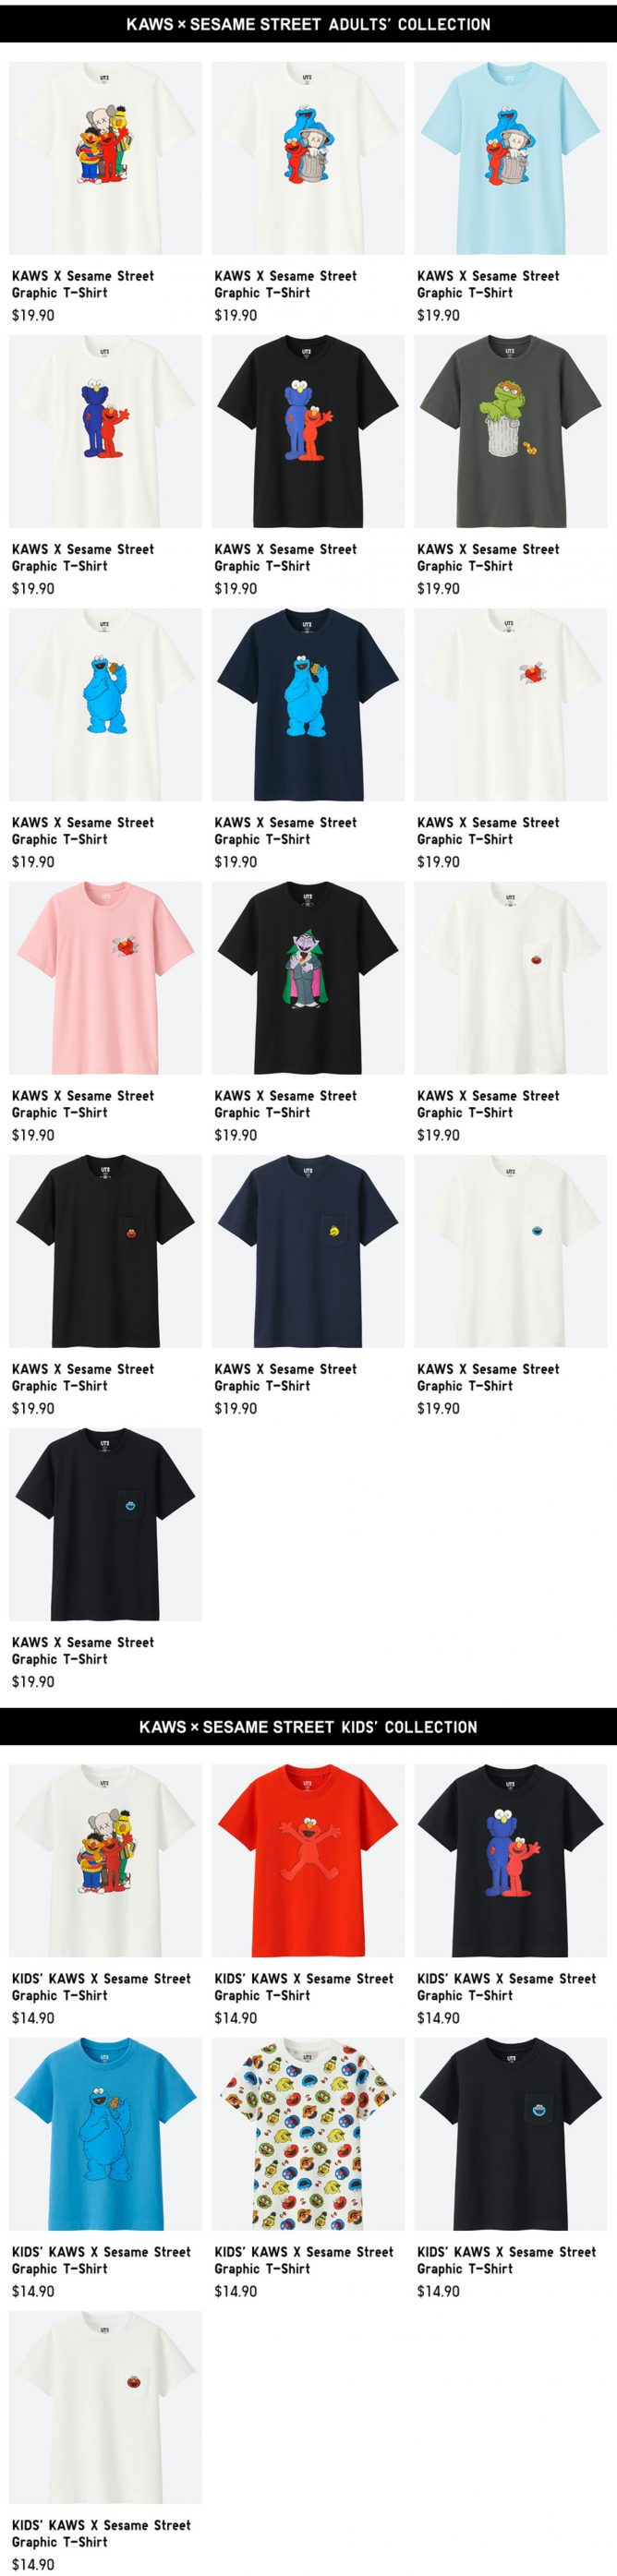 be113e47c Uniqlo: NEW KAWS x SESAME STREET Collection Launch on 29 June 2018 ...